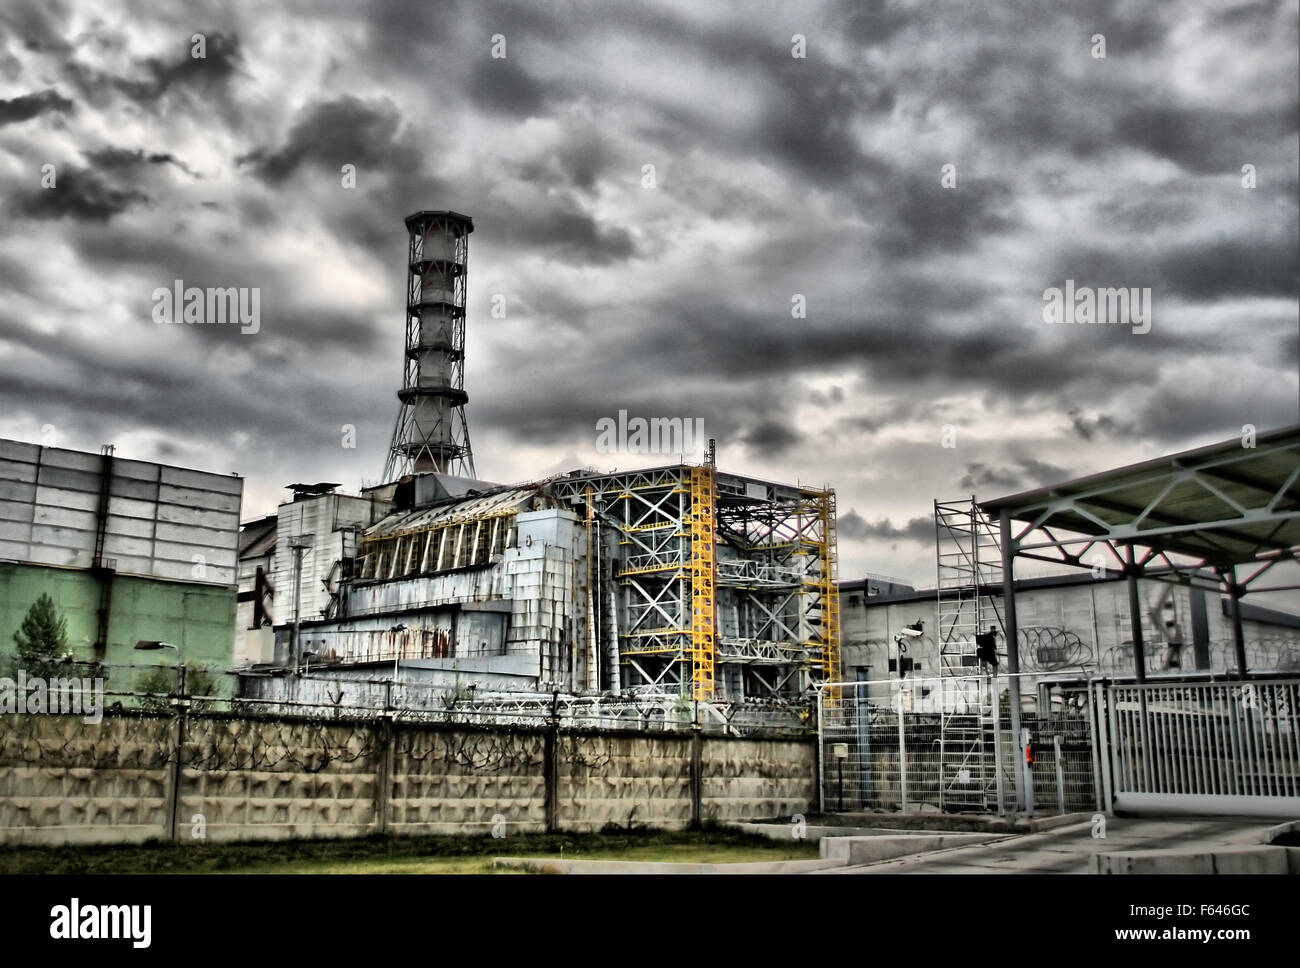 Chernobyl nuclear power station. 4-th block. Ukraine - Stock Image